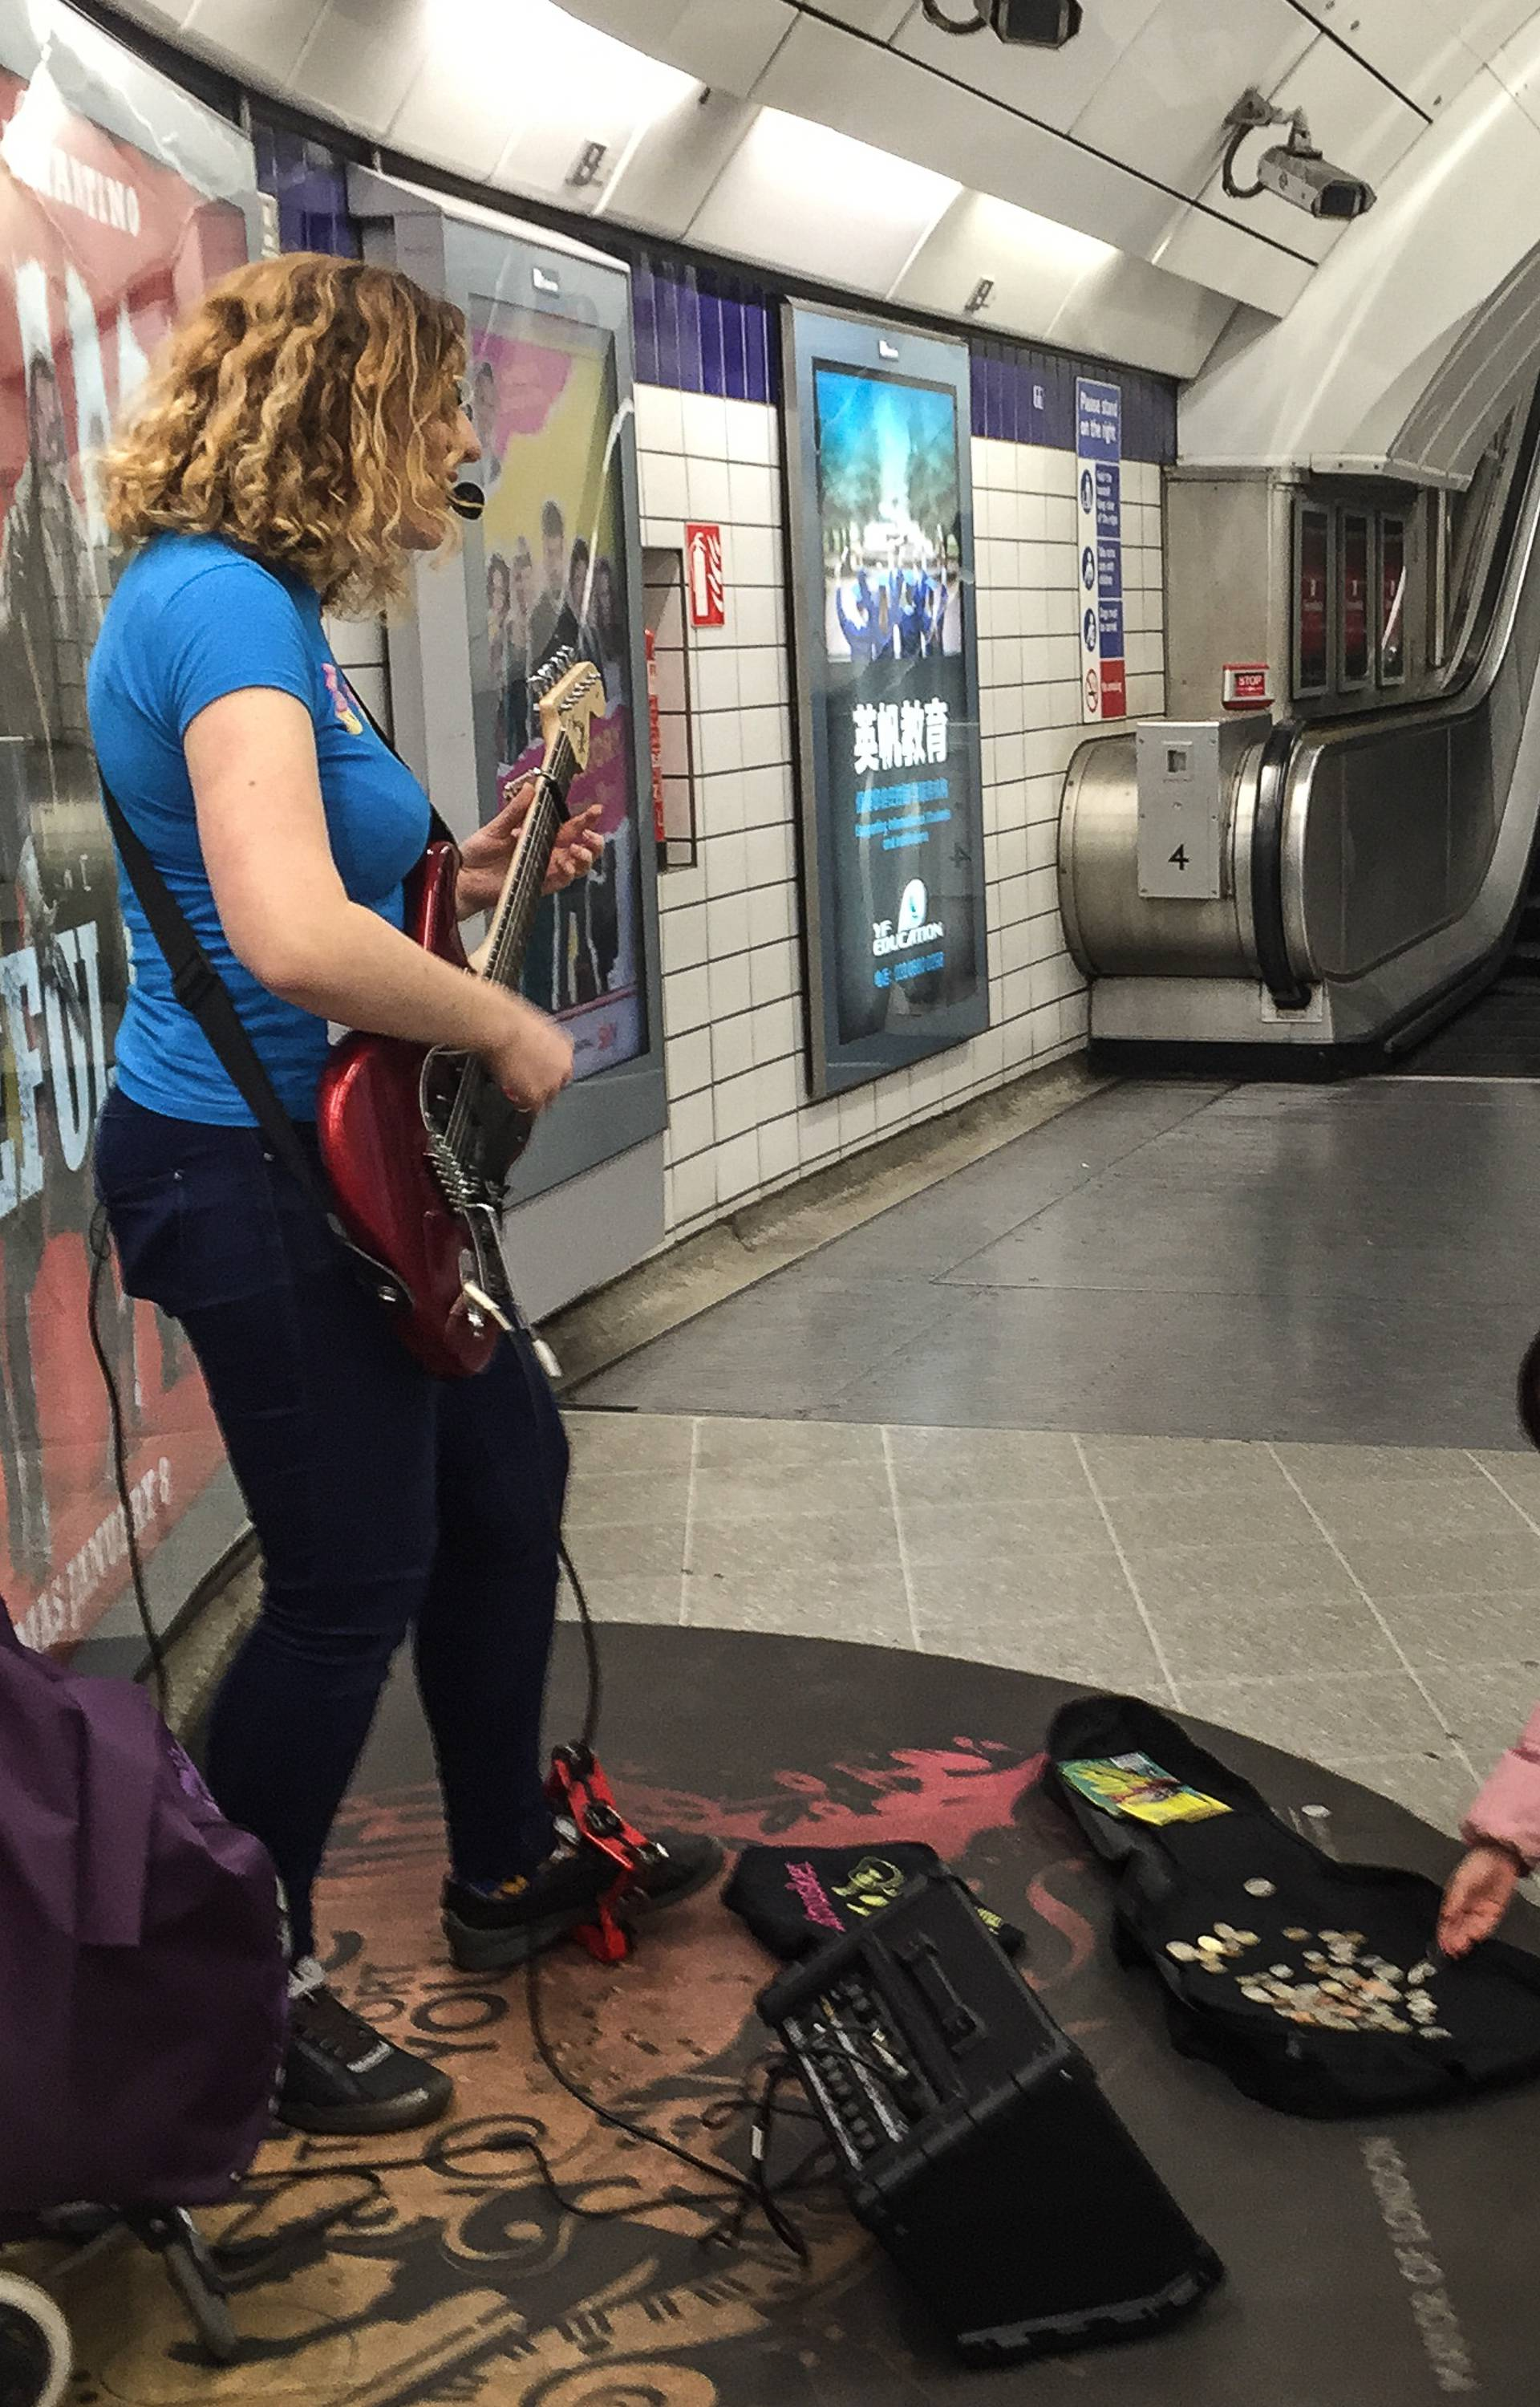 Buskers of London